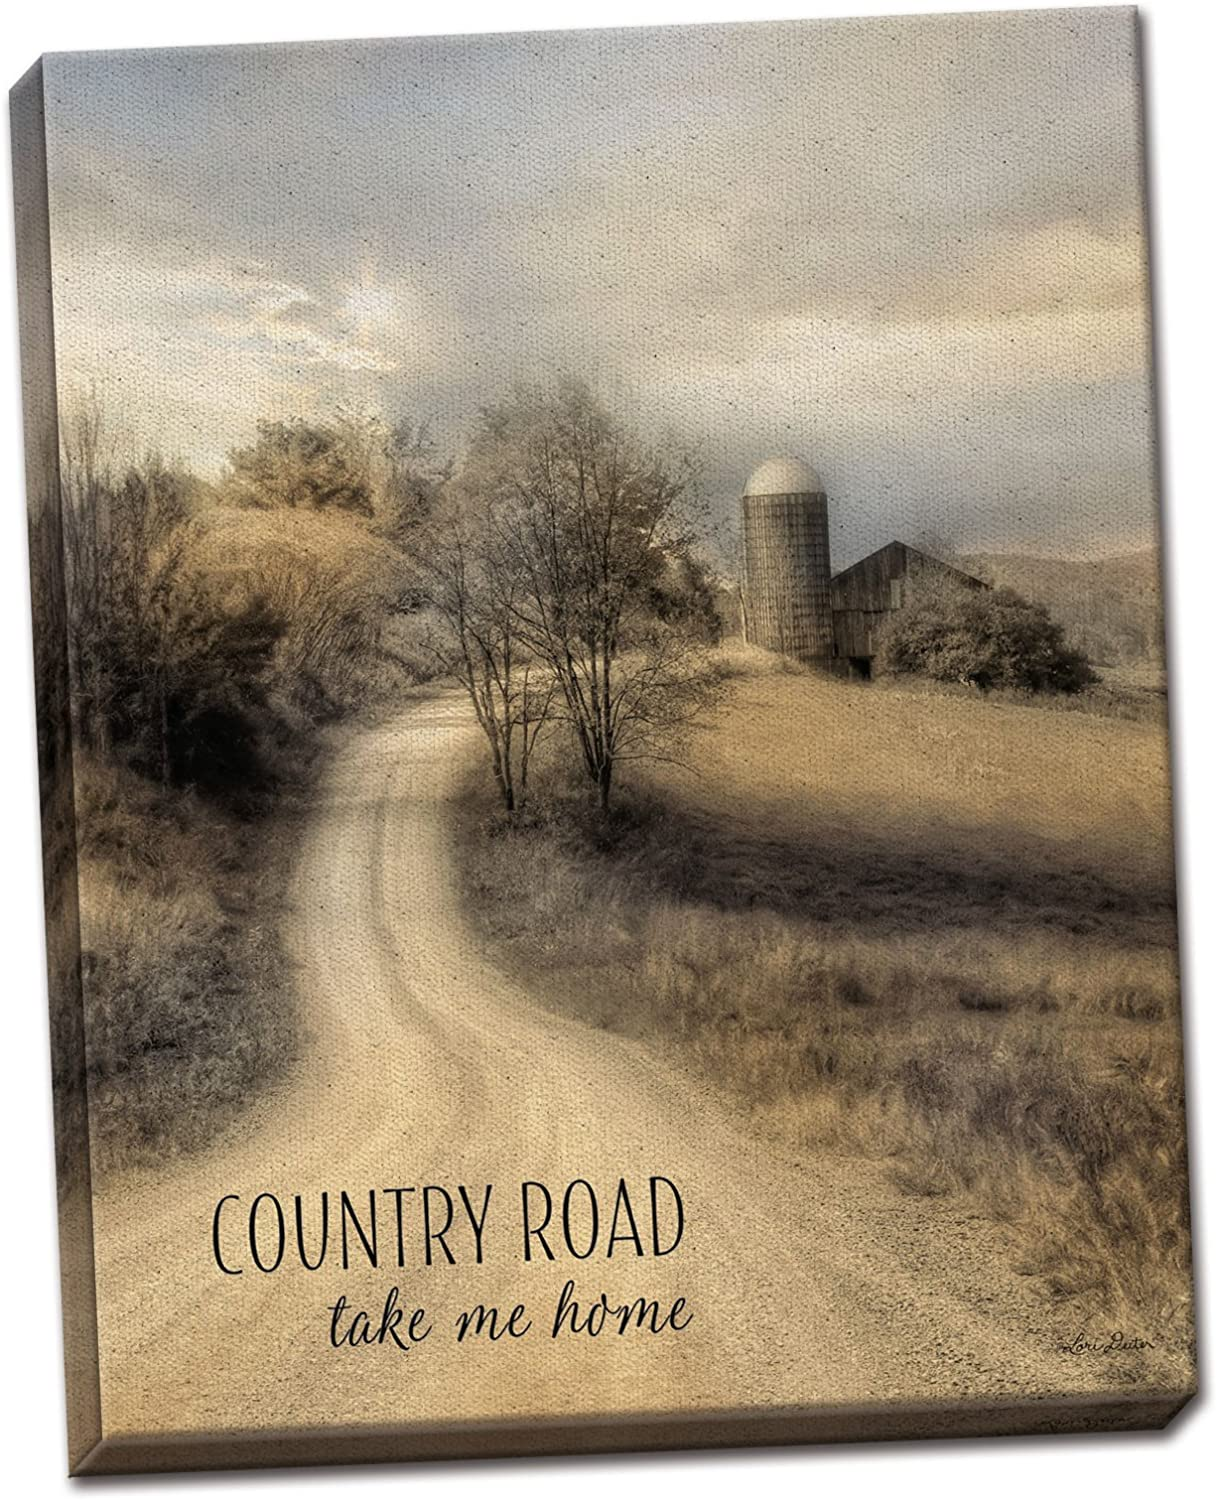 Gango Home Decor Country-Rustic Country Road Take Me Home by Lori Deiter (Ready to Hang); One 12x16in Hand-Stretched Canvas